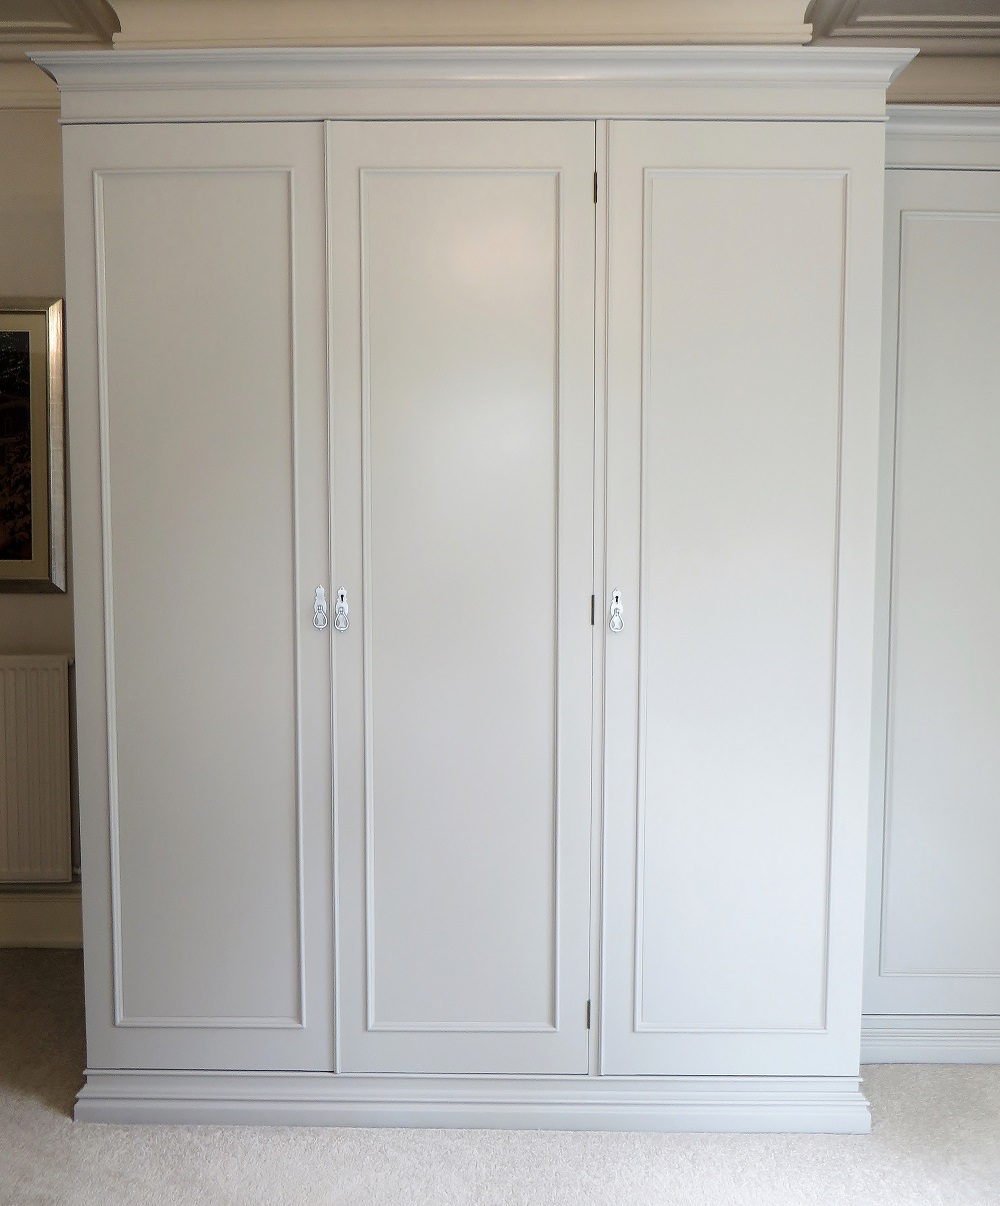 Central Coast Kitchens And Wardrobes Home: Painted Fitted Wardrobes, Thirsk Yorkshire